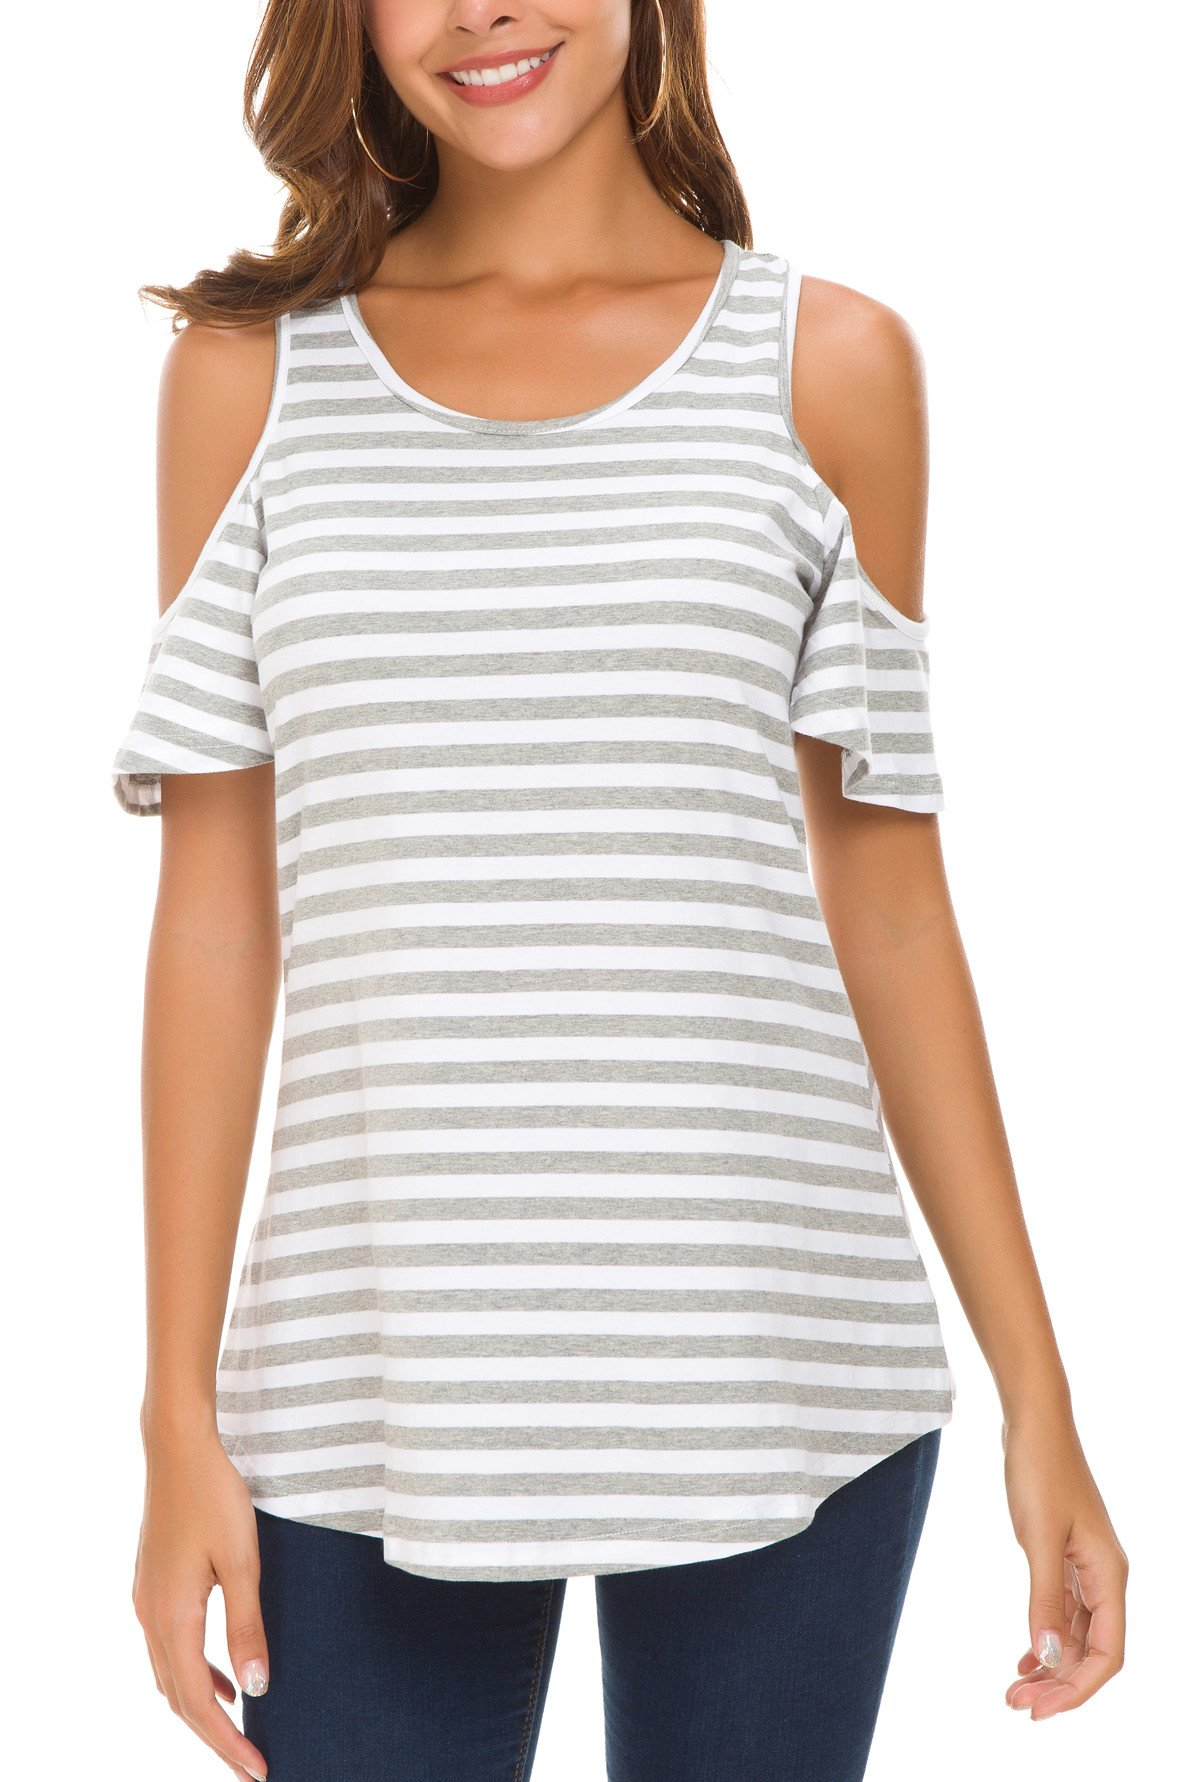 HBEYYTO Women Summer Short Sleeve Cold Shoulder Striped Shirt Tops Blouses Gray Large